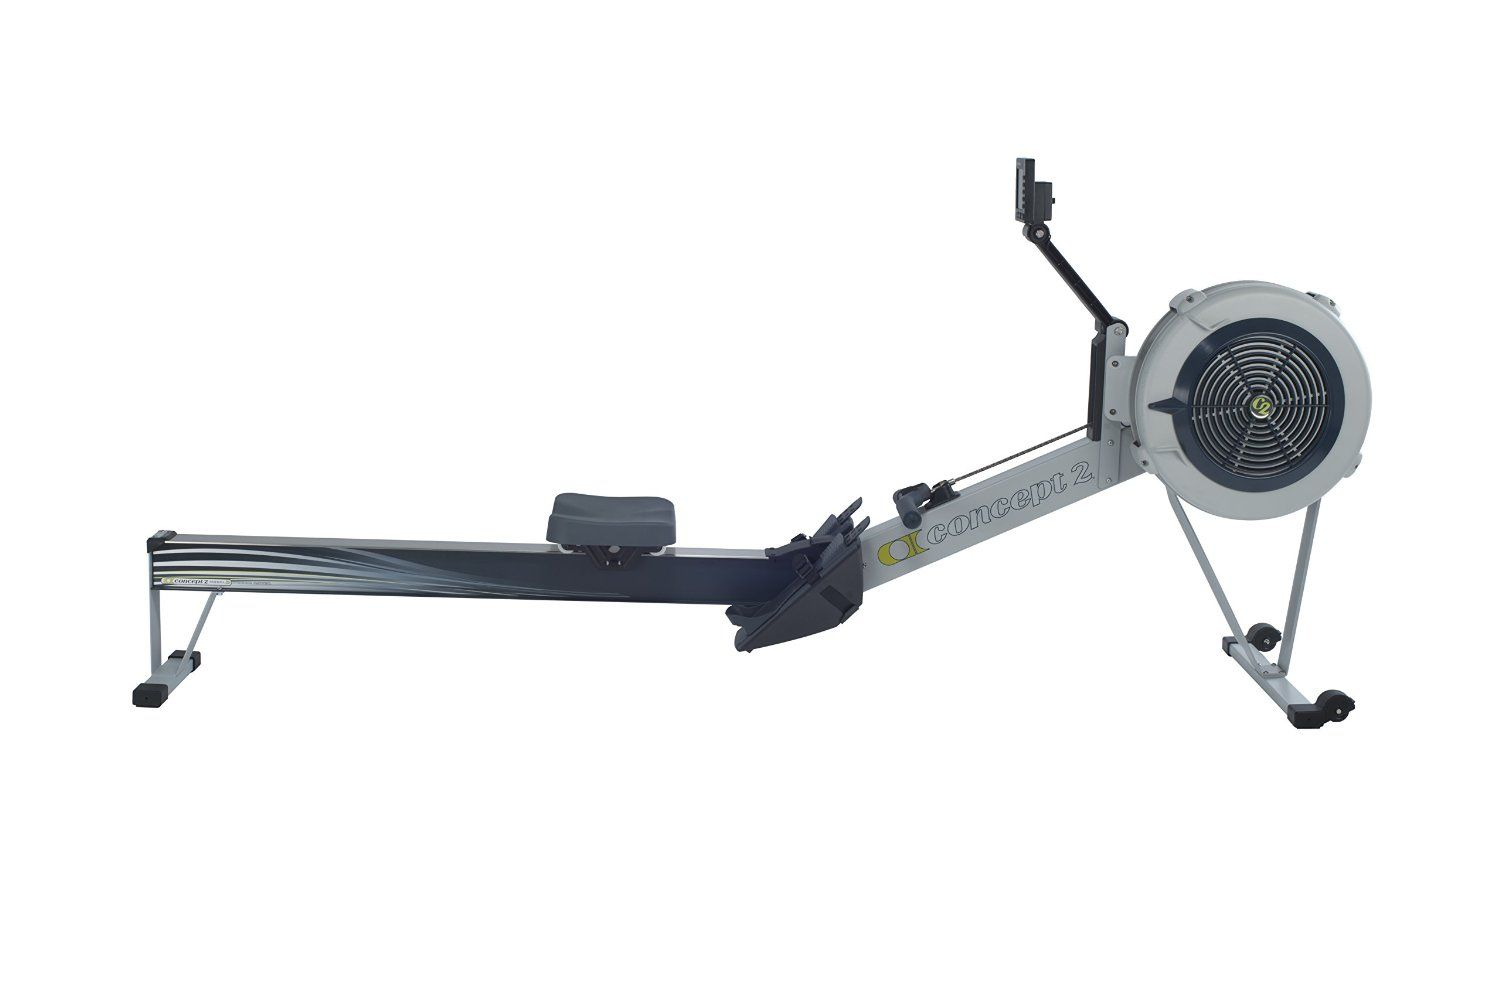 Abdominal exercise equipment rowing machine by garage gym